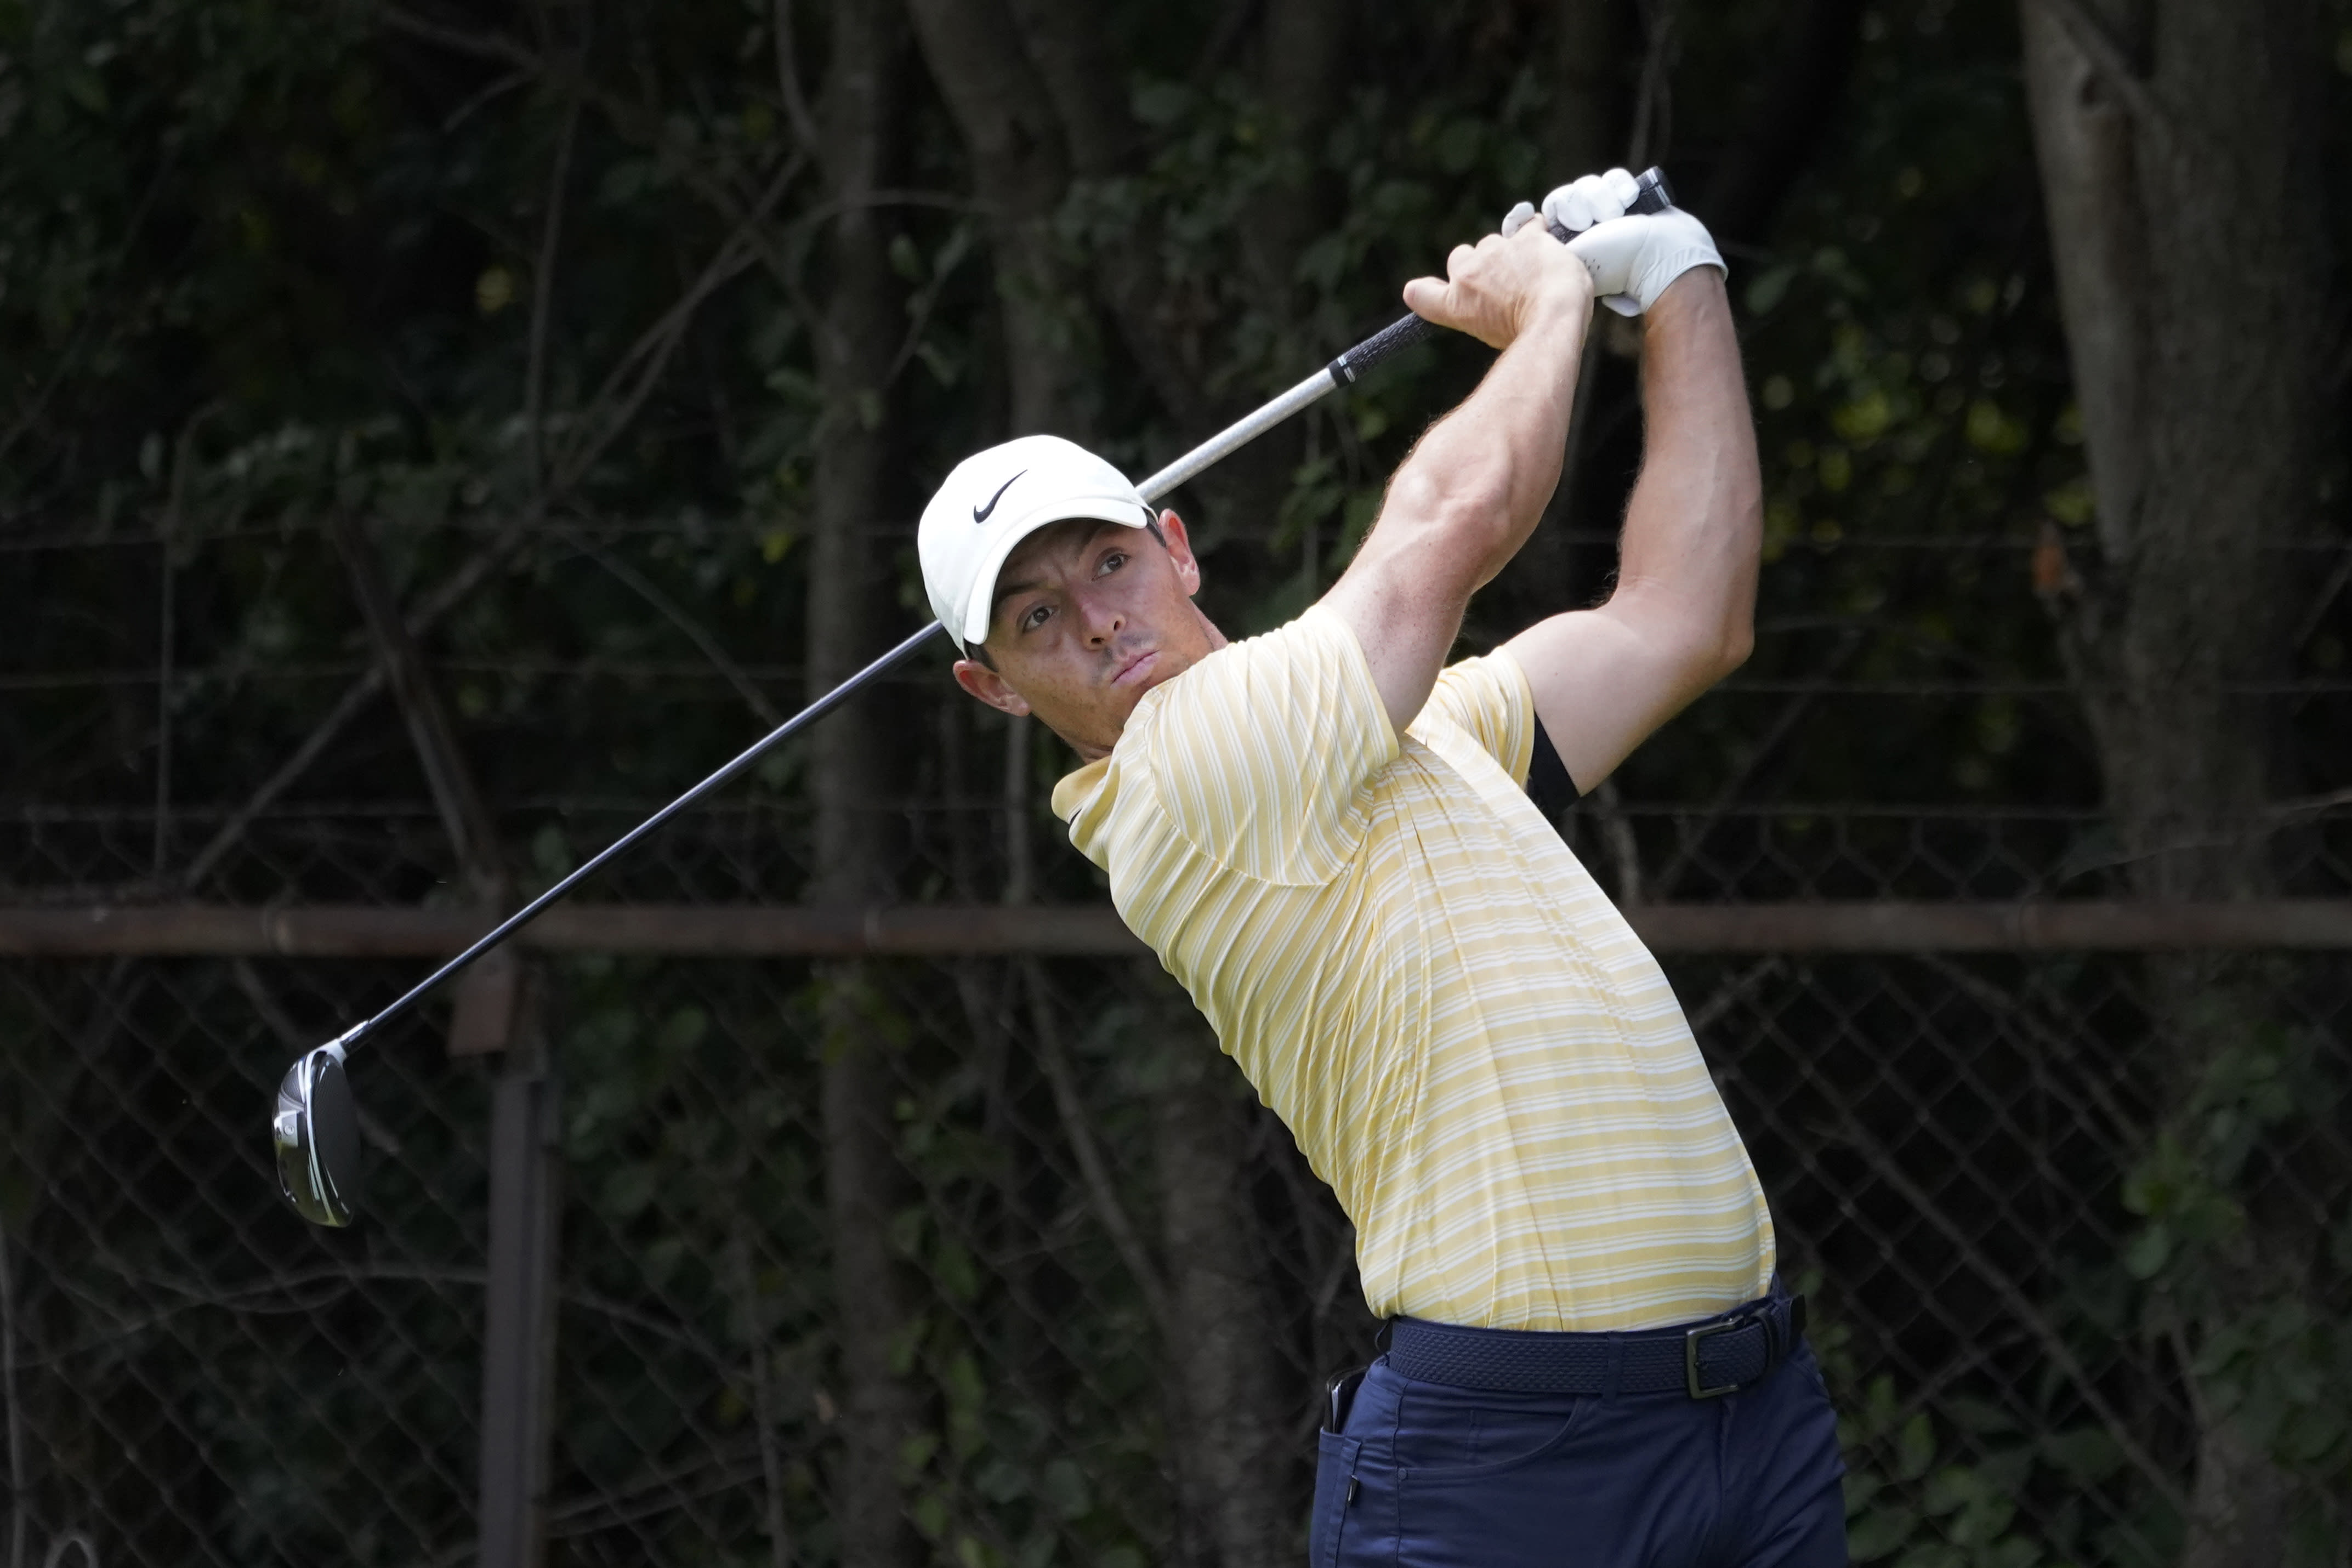 Rory McIlroy, of Northern Ireland, watches his tee shot on the second hole during the third round Saturday, Aug. 29, 2020, for the BMW Championship golf tournament at the Olympia Fields Country Club in Olympia Fields, Ill. (AP Photo/Charles Rex Arbogast)